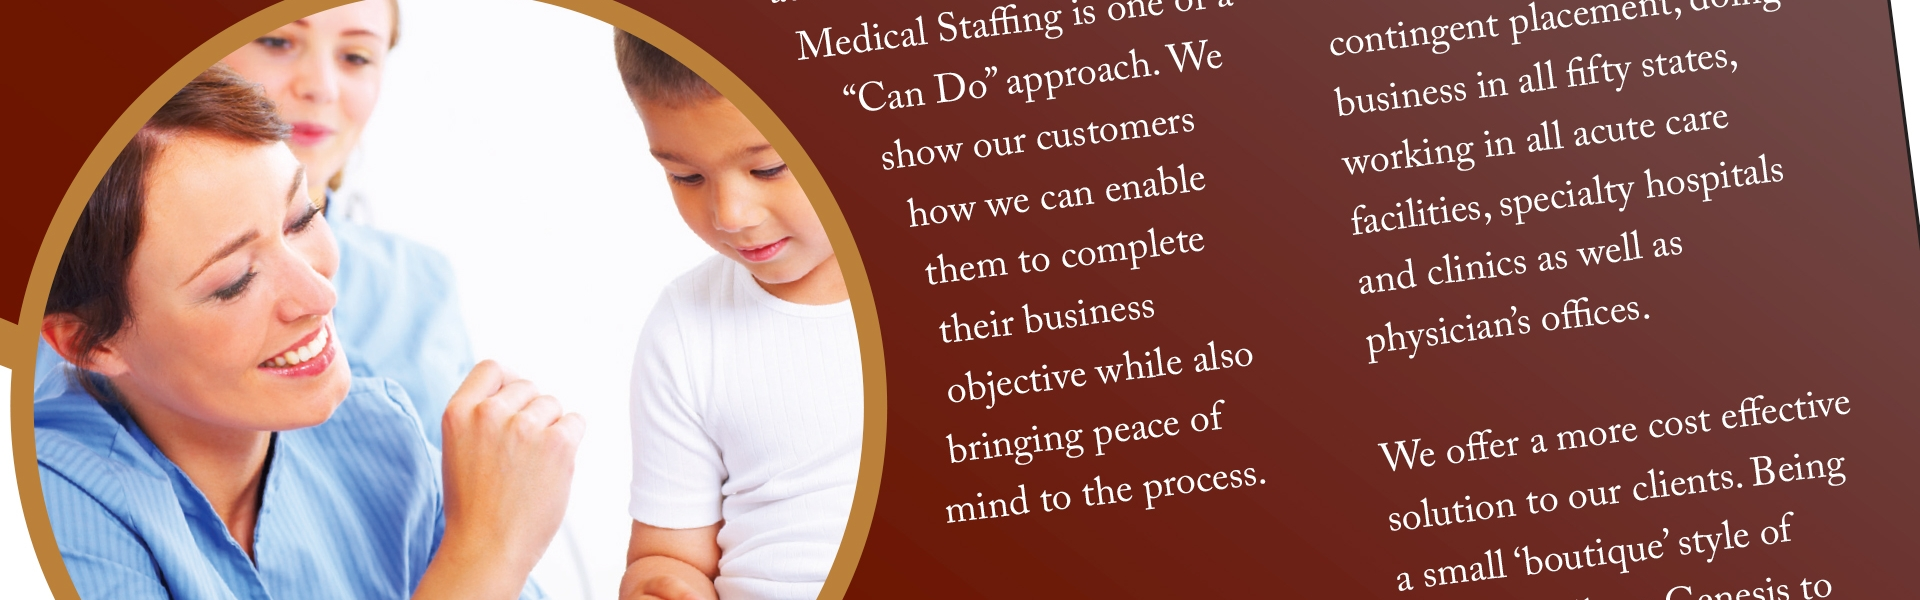 Genesis Medical Staffing Brand Development